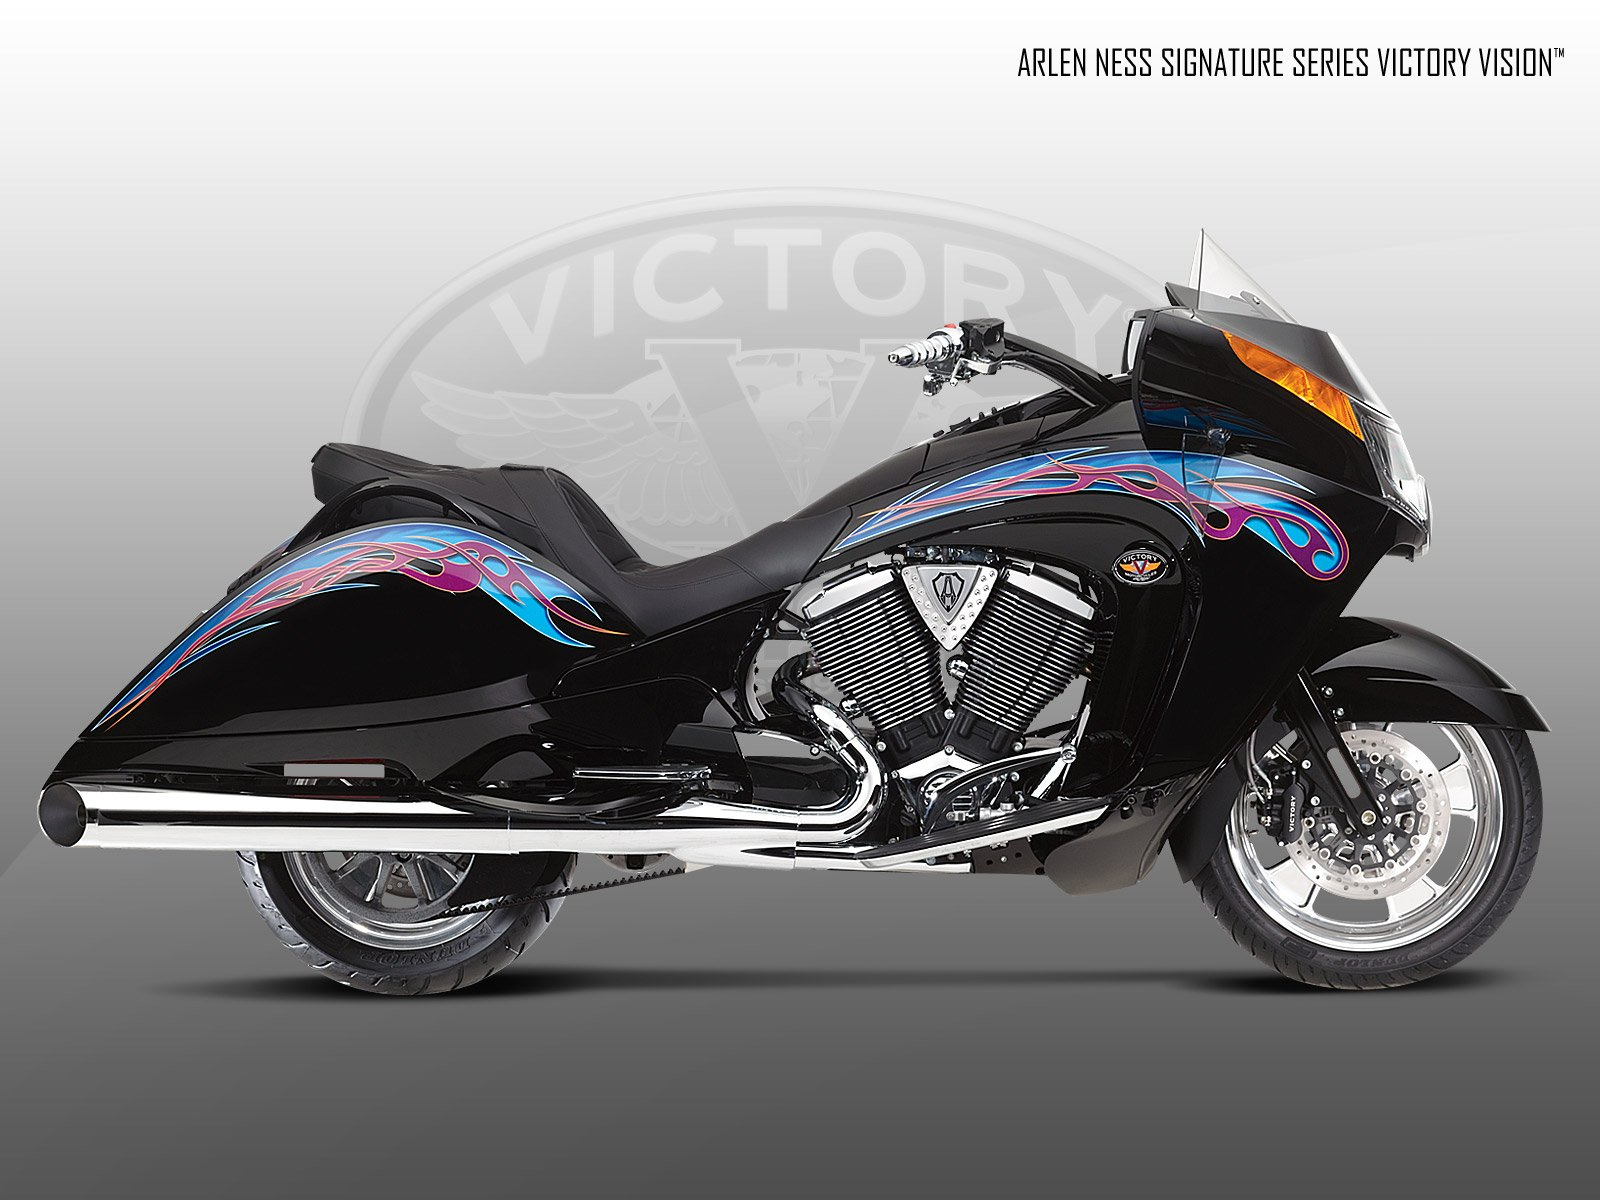 2009 Victory Arlen Ness Victory Vision Wallpaper 1600x1200